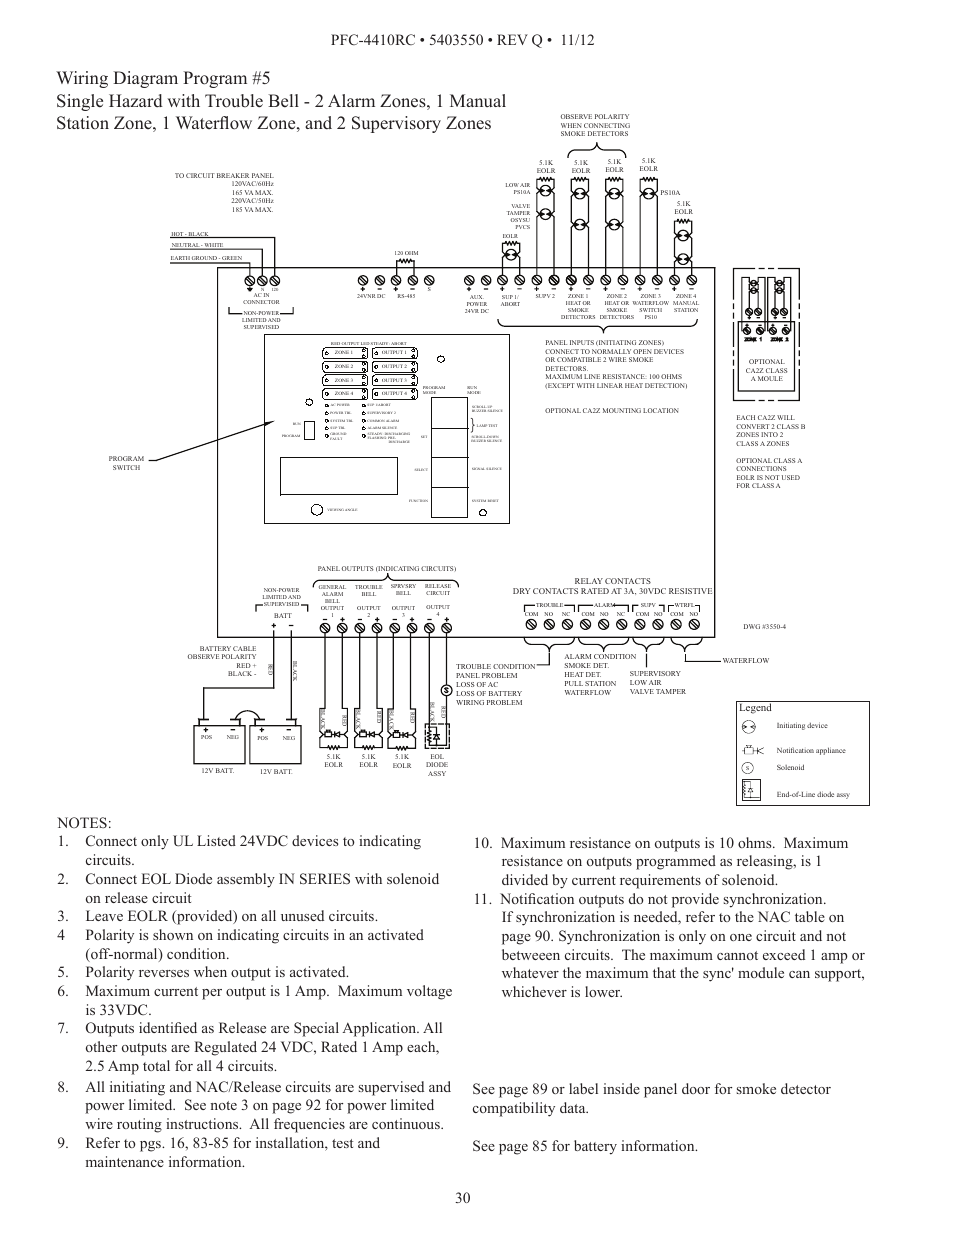 Tamper Switch Wiring Diagram - Wiring Diagram Data on fire alarm lights, fire alarm circuit diagram, basic fire alarm system diagram, fire alarm radio, fire alarm frame, fire alarm panel, fire alarm notification appliance, fire alarm symbols, fire system lights, fire alarm capacitor, fire alarm transformer, fire alarm antenna, fire alarm switch, fire alarm layout diagram, vista 128 panel diagram, elevator fire alarm system diagram, fire alarm call point, fire alarm connection diagram, fire alarm push down, fire alarm systems types,